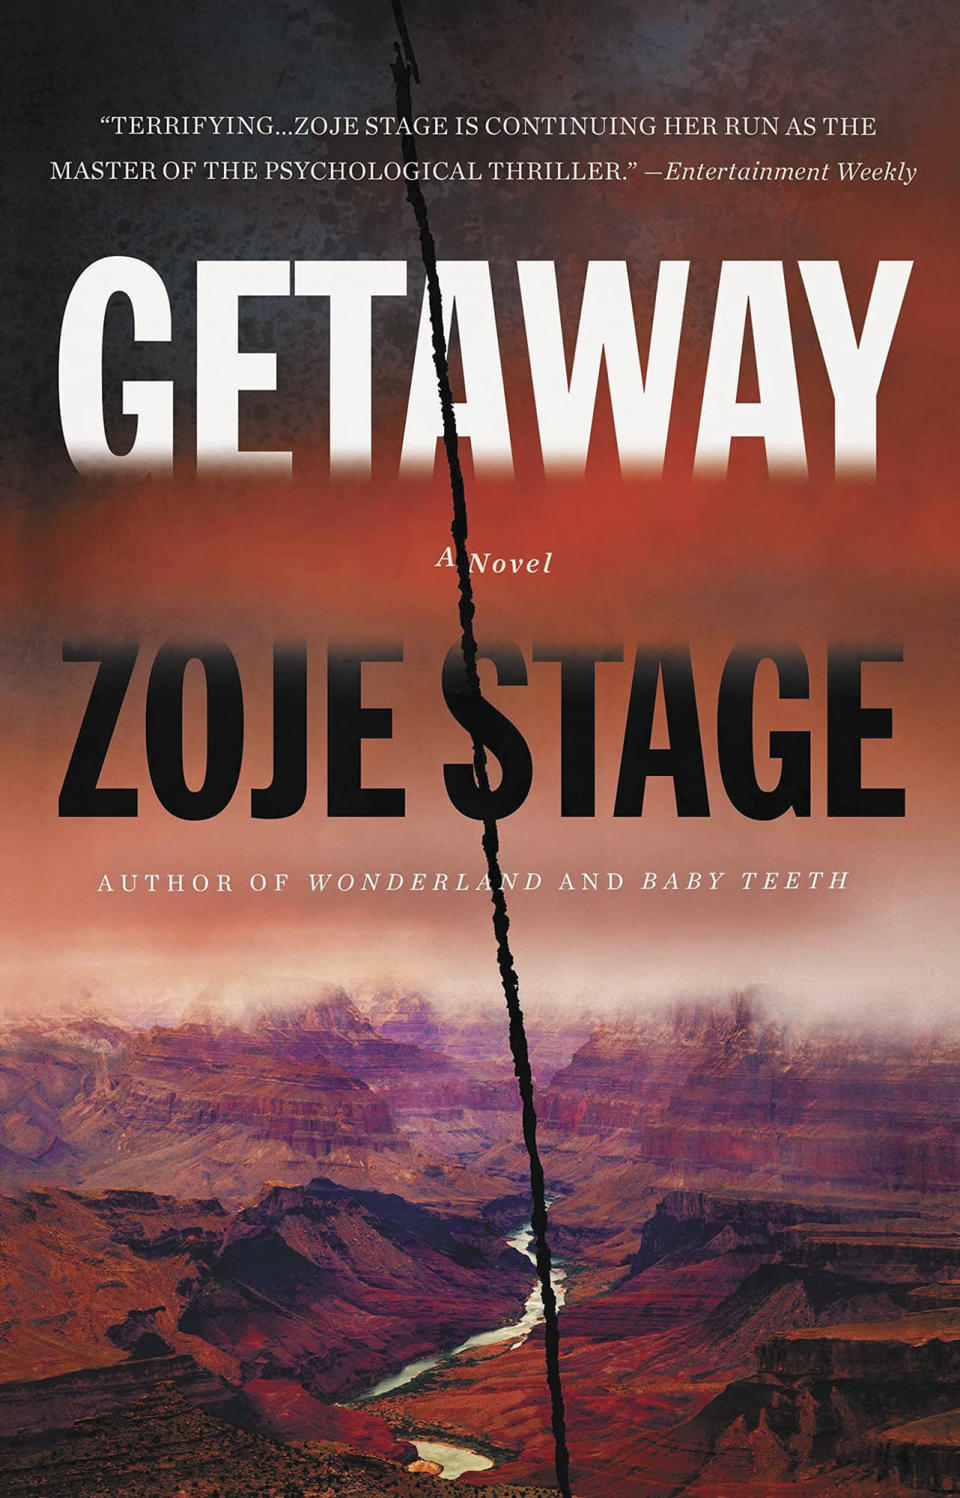 <p>The <em>Baby Teeth</em> author's third novel is set during a hiking trip to the Grand Canyon and explores the dark side of friendship: jealousy, envy, and more that change the relationship between three women forever. (Aug. 3)</p>